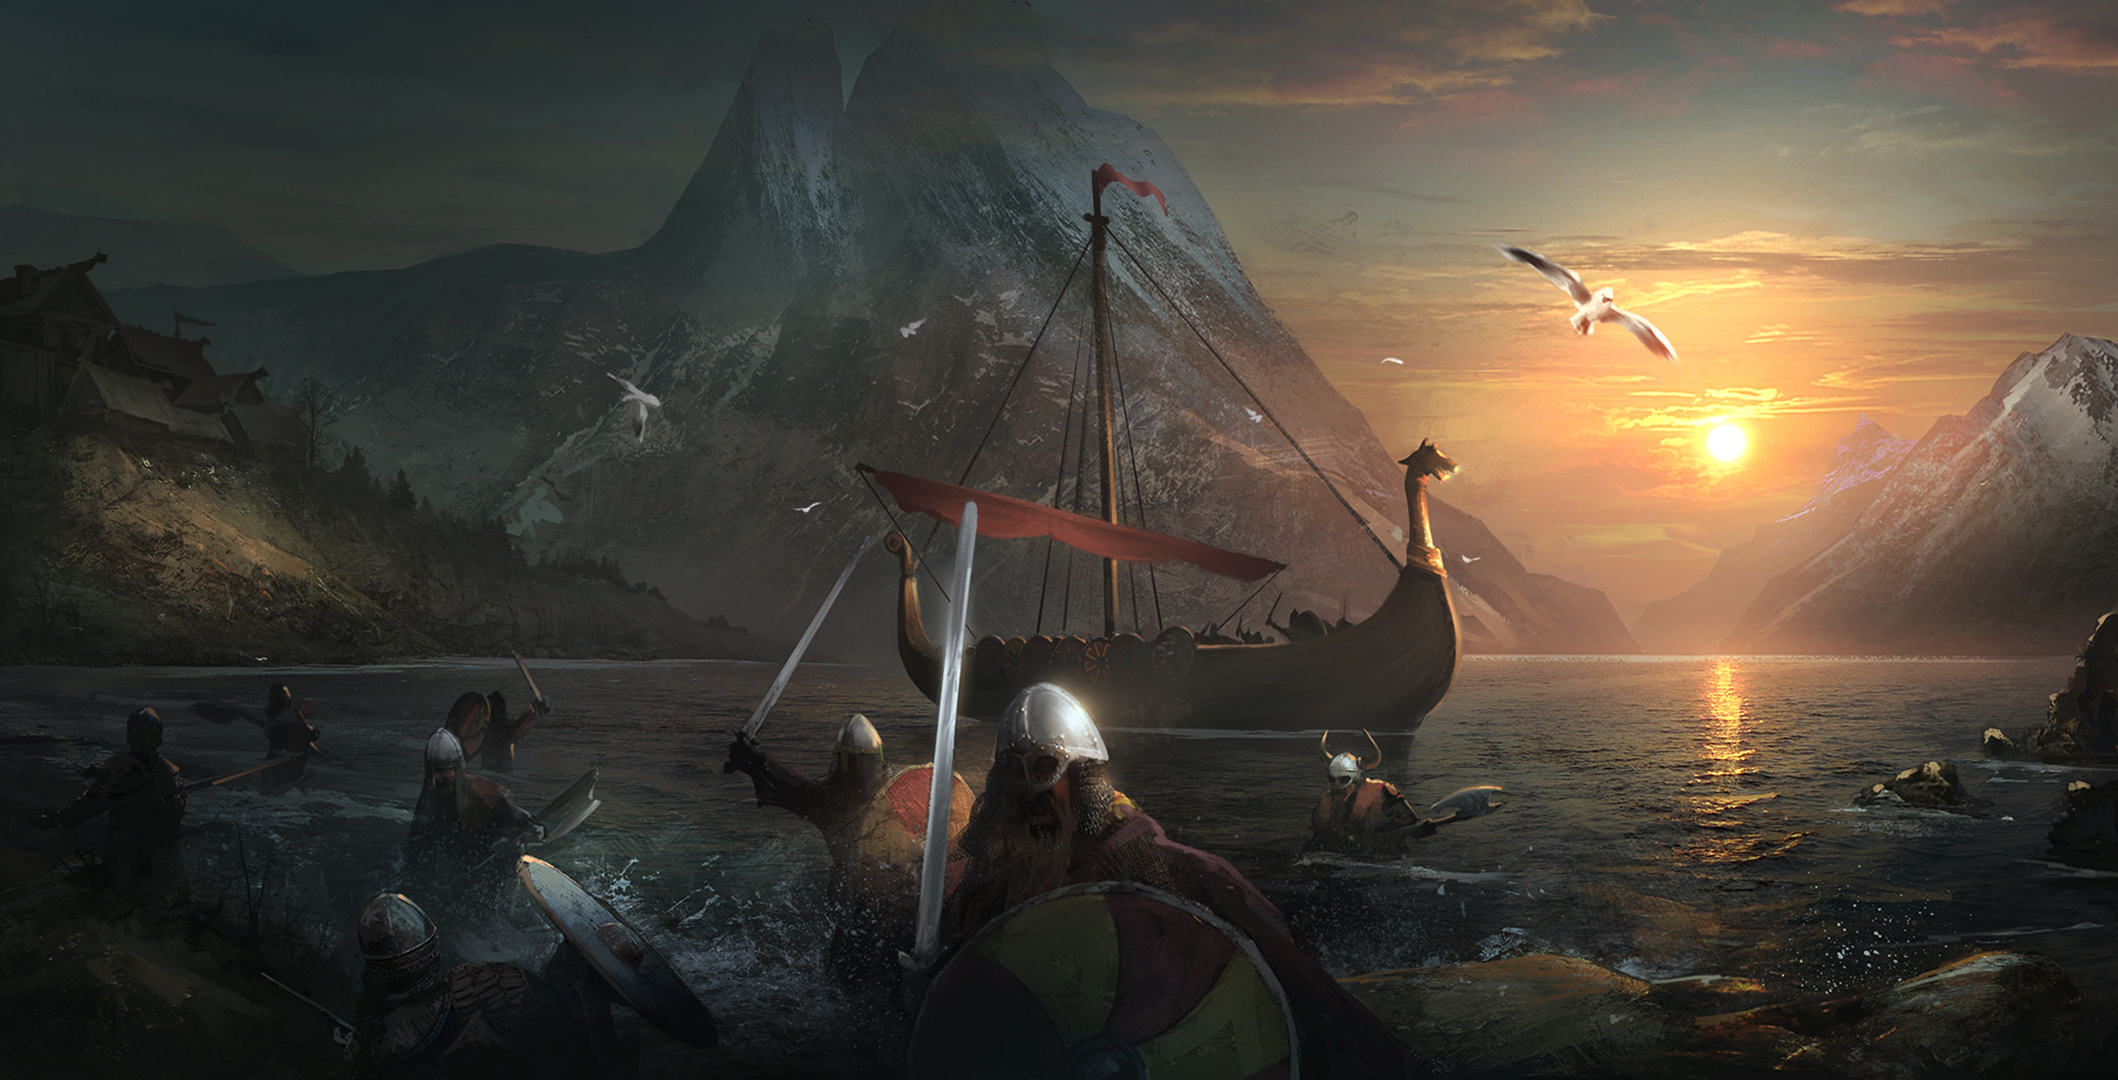 Viking Full HD Wallpaper and Background Image | 2118x1080 ...